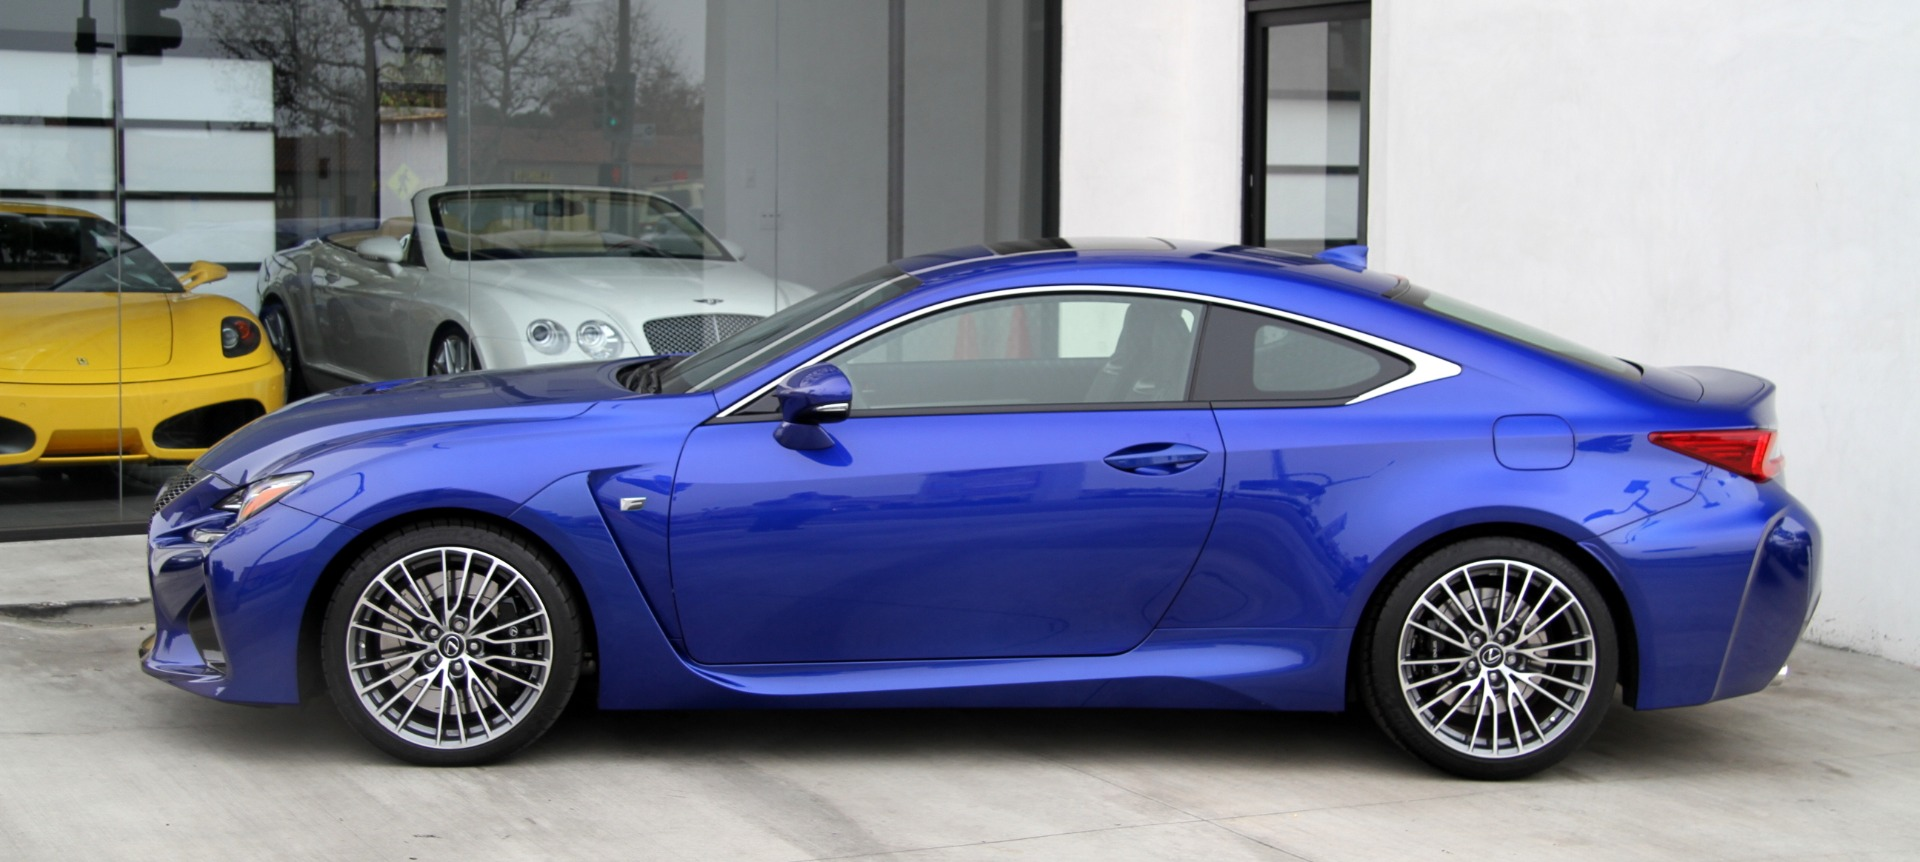 2015 lexus rc f only 1 100 miles stock 000711 for sale near redondo beach ca ca. Black Bedroom Furniture Sets. Home Design Ideas